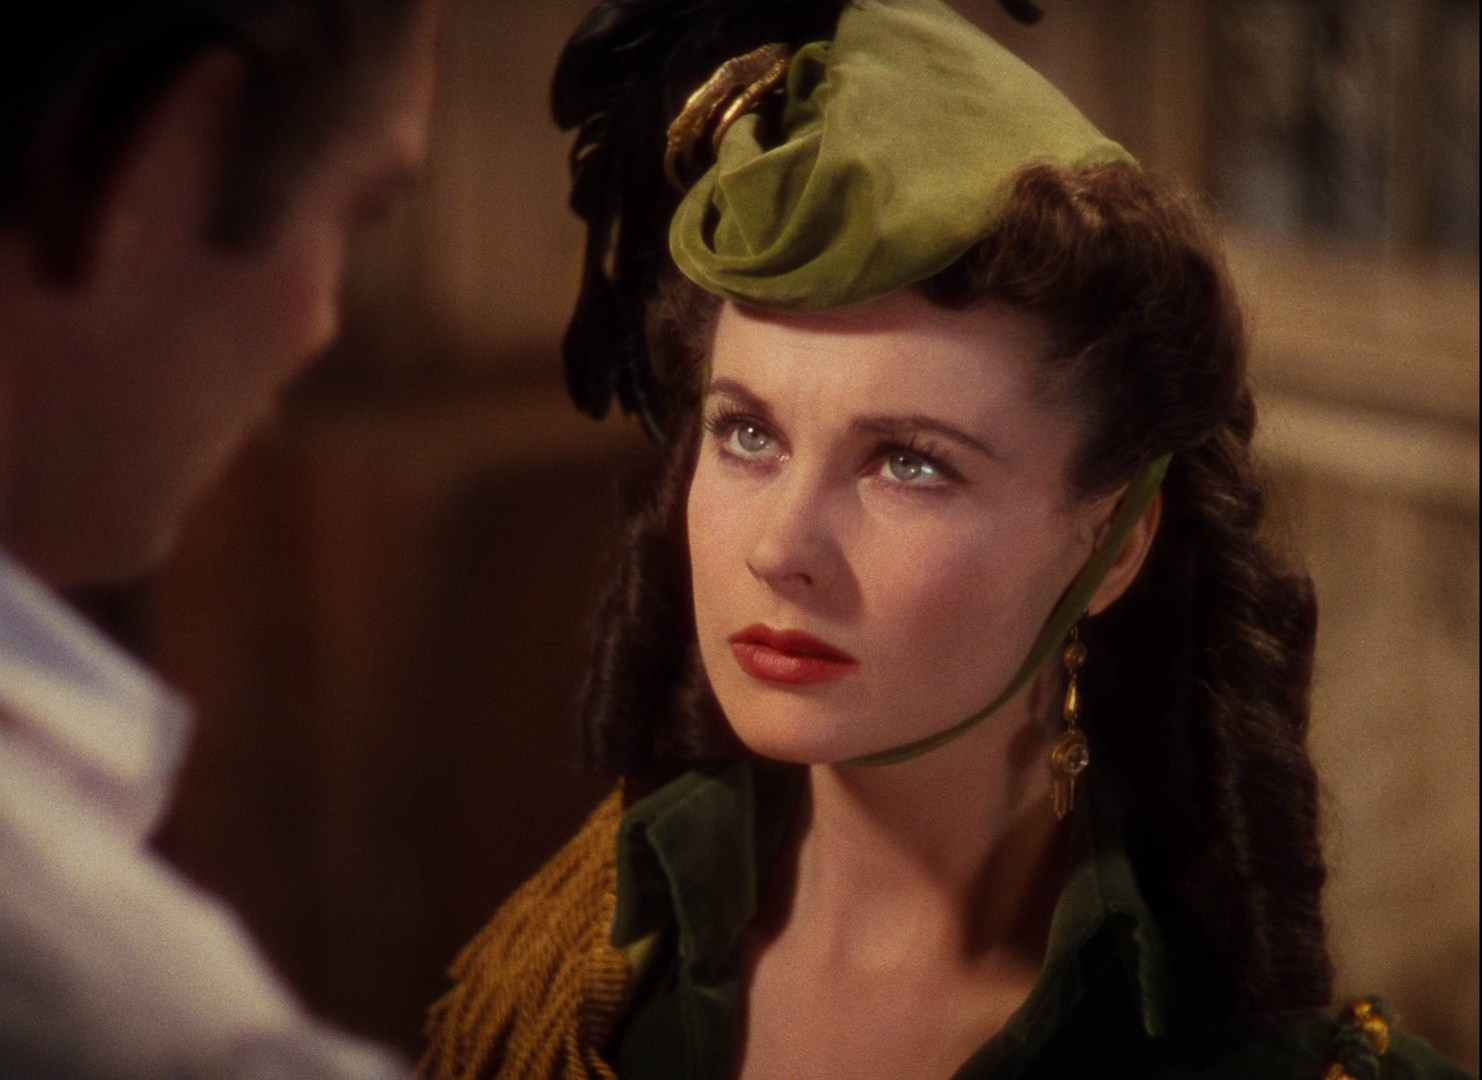 ... Gone with the Wind on the big screen this Wednesday, August 31